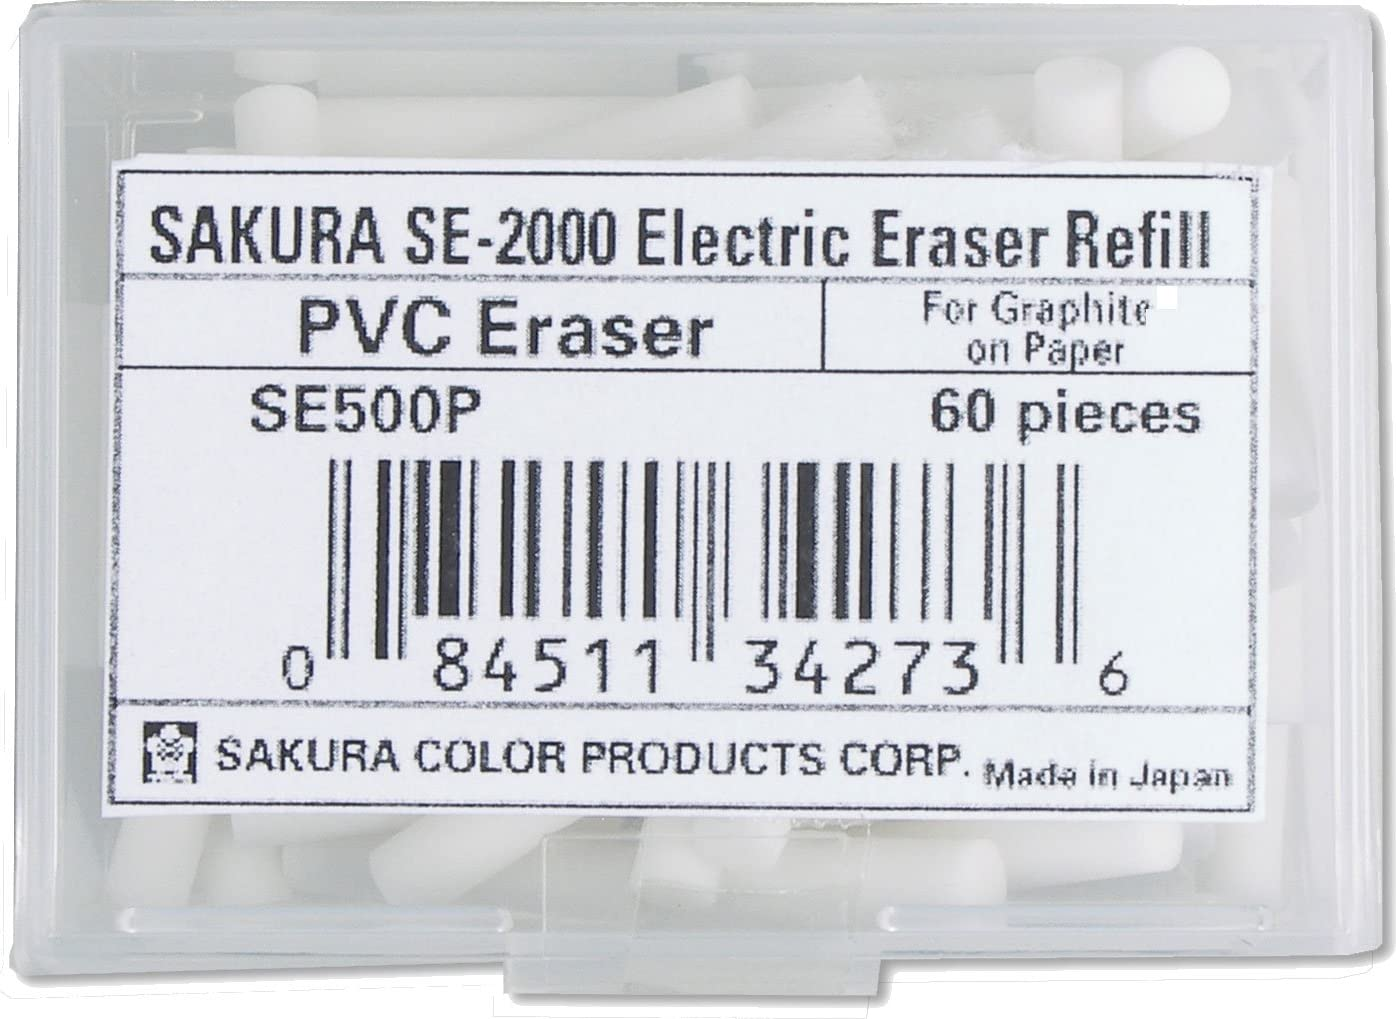 Sakura Electric Eraser Max 44% OFF Refill New arrival White. 2 Pack of Counts 120